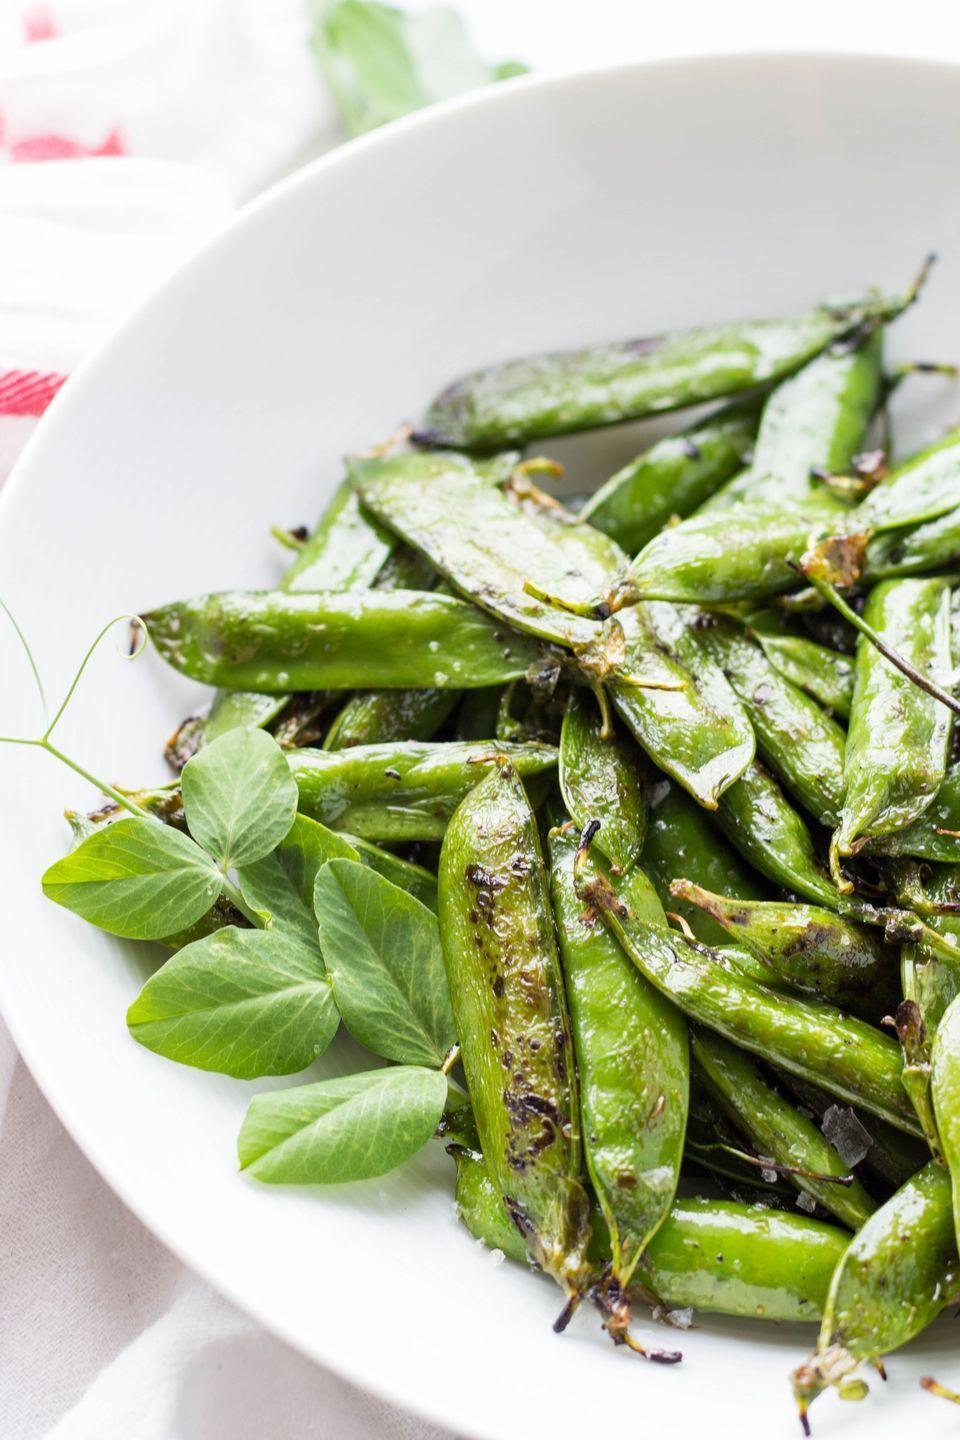 """<p>This the easiest-ever recipe for salted grilled peas in the pod, and it'll look beautiful on your table! </p><p><strong>Get the recipe at <a href=""""https://coleycooks.com/grilled-peas/"""" rel=""""nofollow noopener"""" target=""""_blank"""" data-ylk=""""slk:Coley Cooks"""" class=""""link rapid-noclick-resp"""">Coley Cooks</a>.</strong> </p><p><a class=""""link rapid-noclick-resp"""" href=""""https://go.redirectingat.com?id=74968X1596630&url=https%3A%2F%2Fwww.walmart.com%2Fip%2FThe-Pioneer-Woman-Timeless-Pre-Seasoned-Plus-10-25-Cast-Iron-Grill-Pan%2F137034757&sref=https%3A%2F%2Fwww.thepioneerwoman.com%2Ffood-cooking%2Fmeals-menus%2Fg32188535%2Fbest-grilling-recipes%2F"""" rel=""""nofollow noopener"""" target=""""_blank"""" data-ylk=""""slk:SHOP PRE-SEASONED GRILL PANS"""">SHOP PRE-SEASONED GRILL PANS</a></p>"""